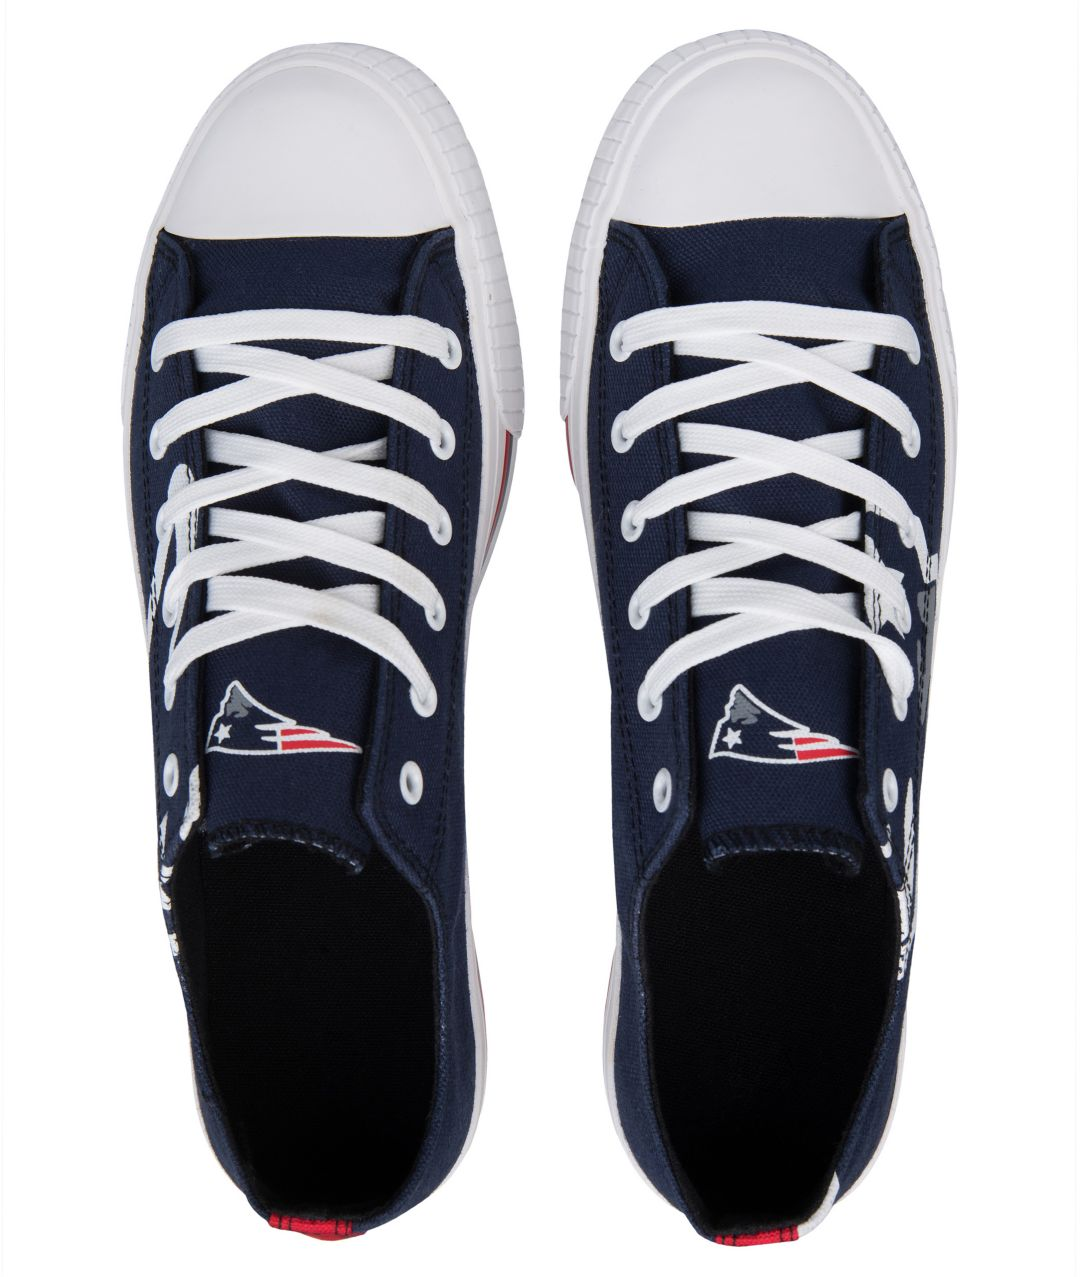 02b3c627 FOCO New England Patriots Canvas Sneakers